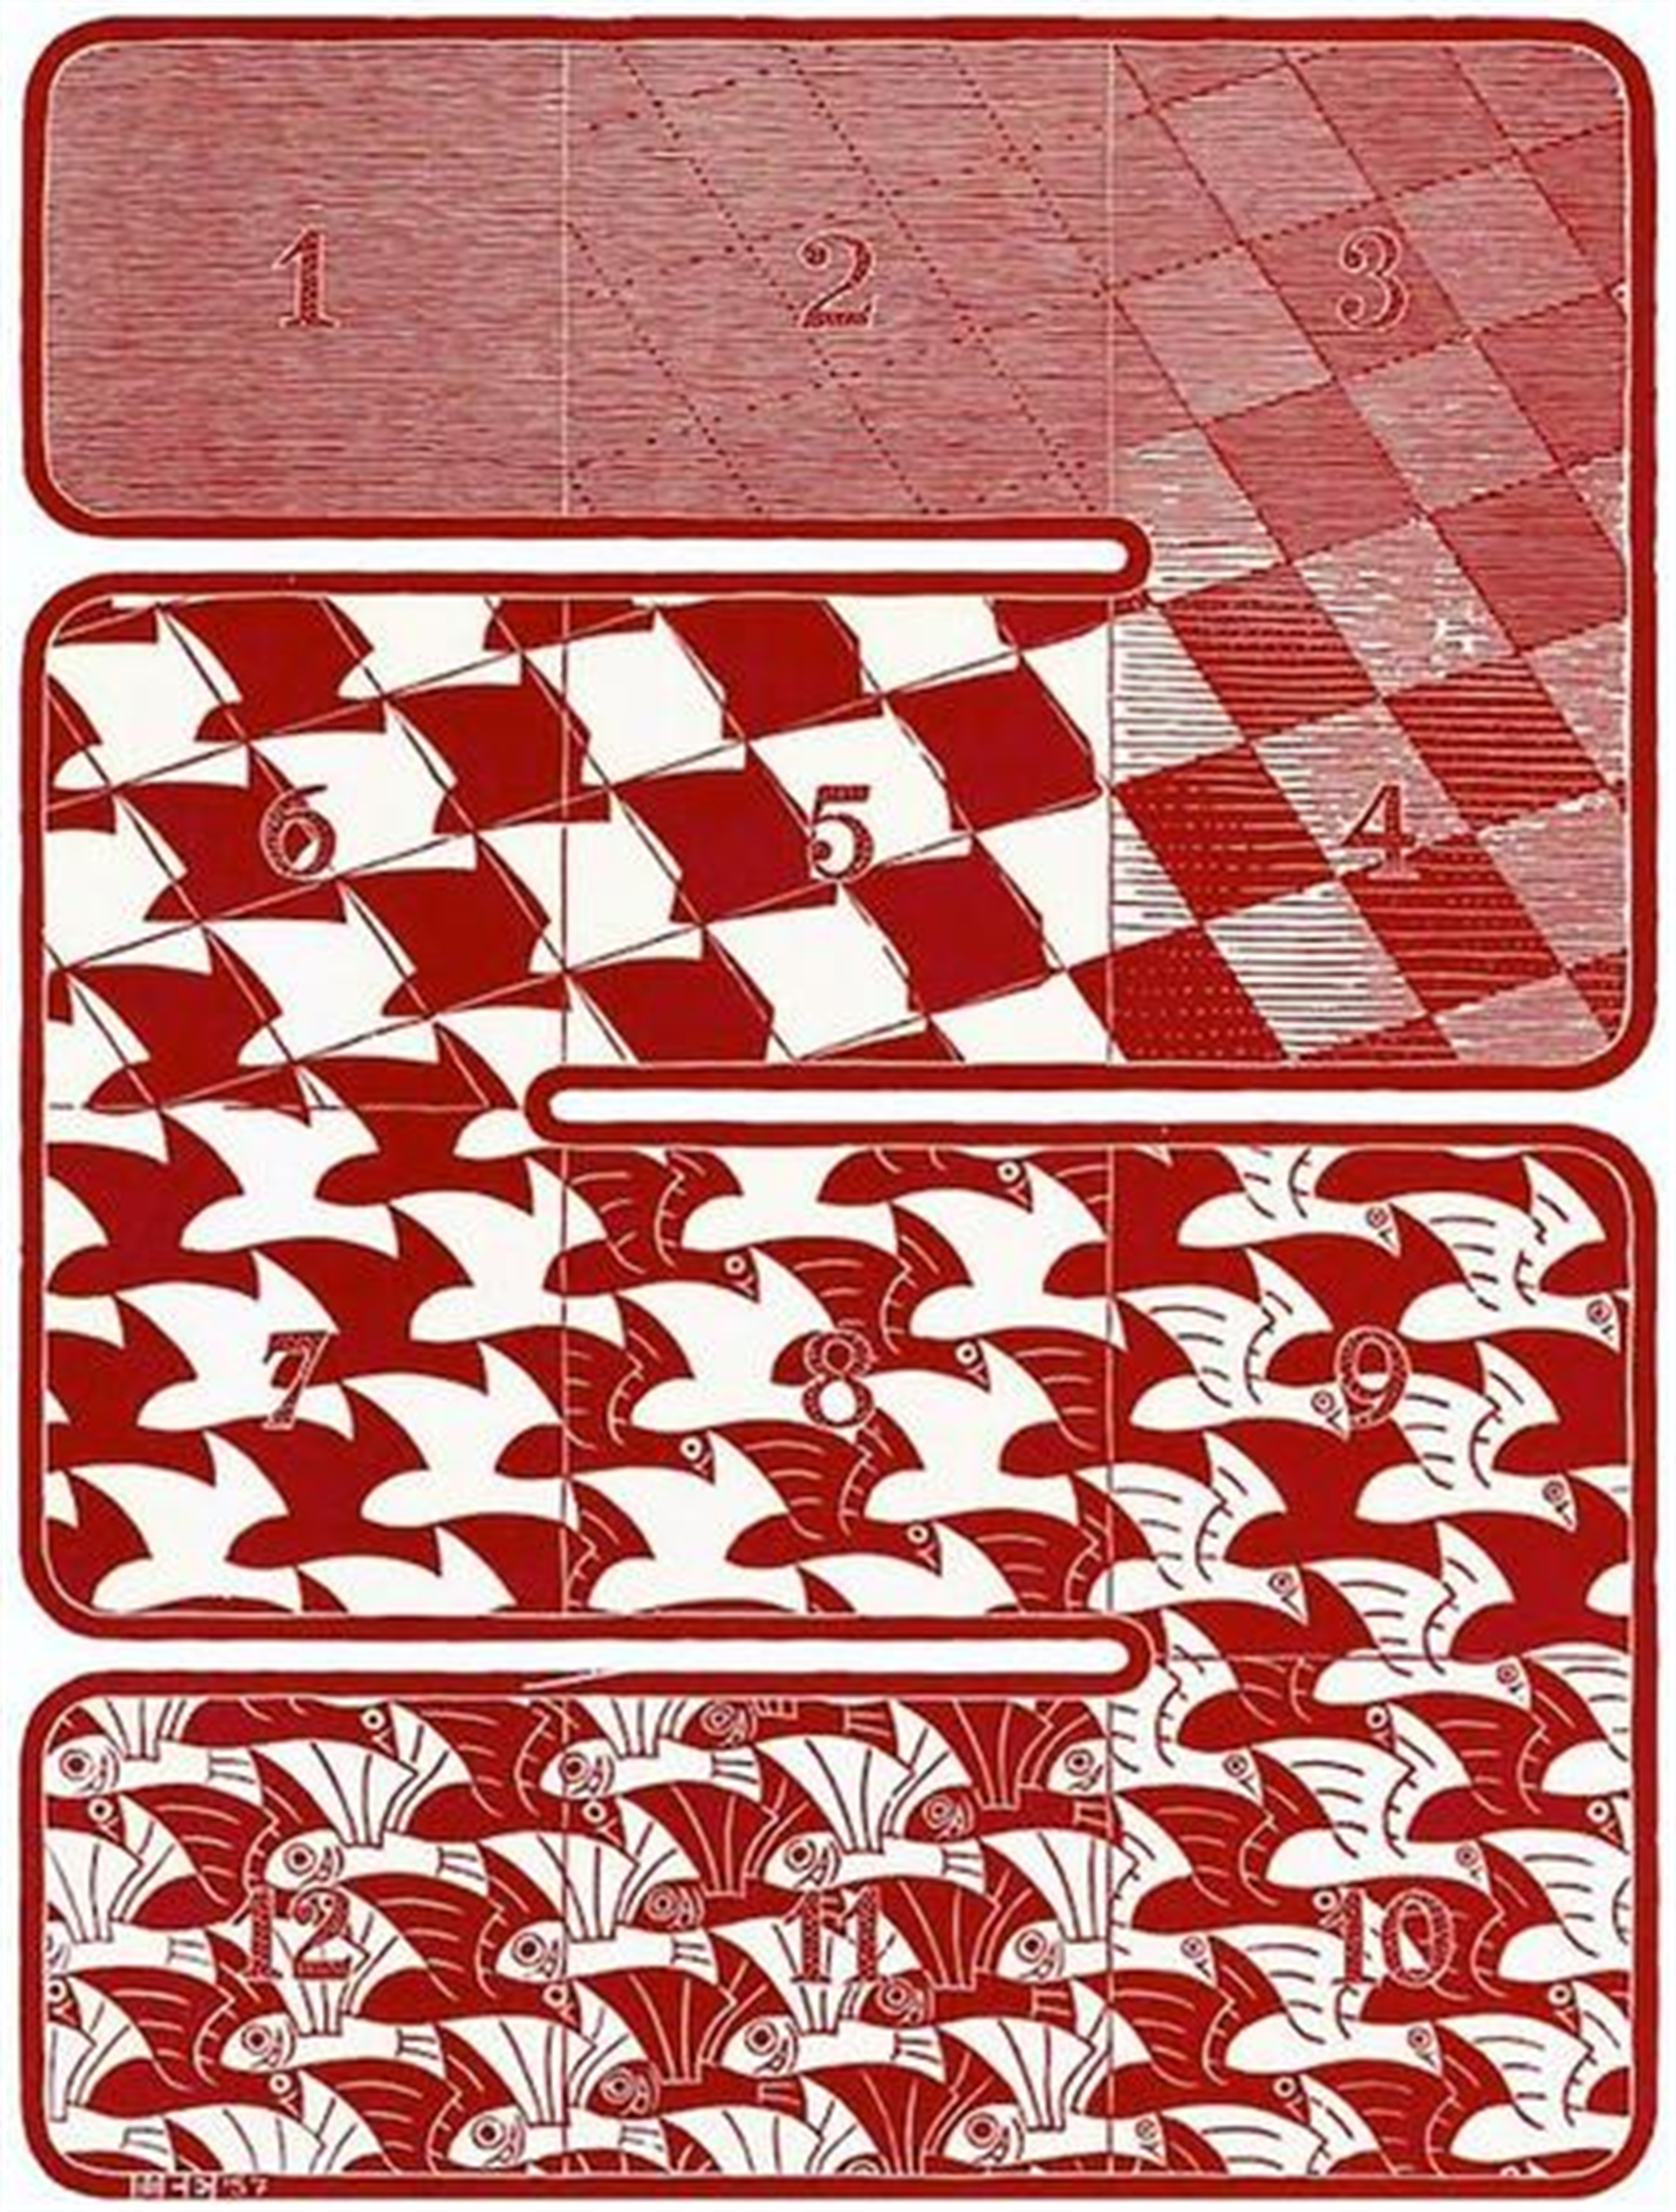 Regular Division of the Plane I Red by M.C. Escher